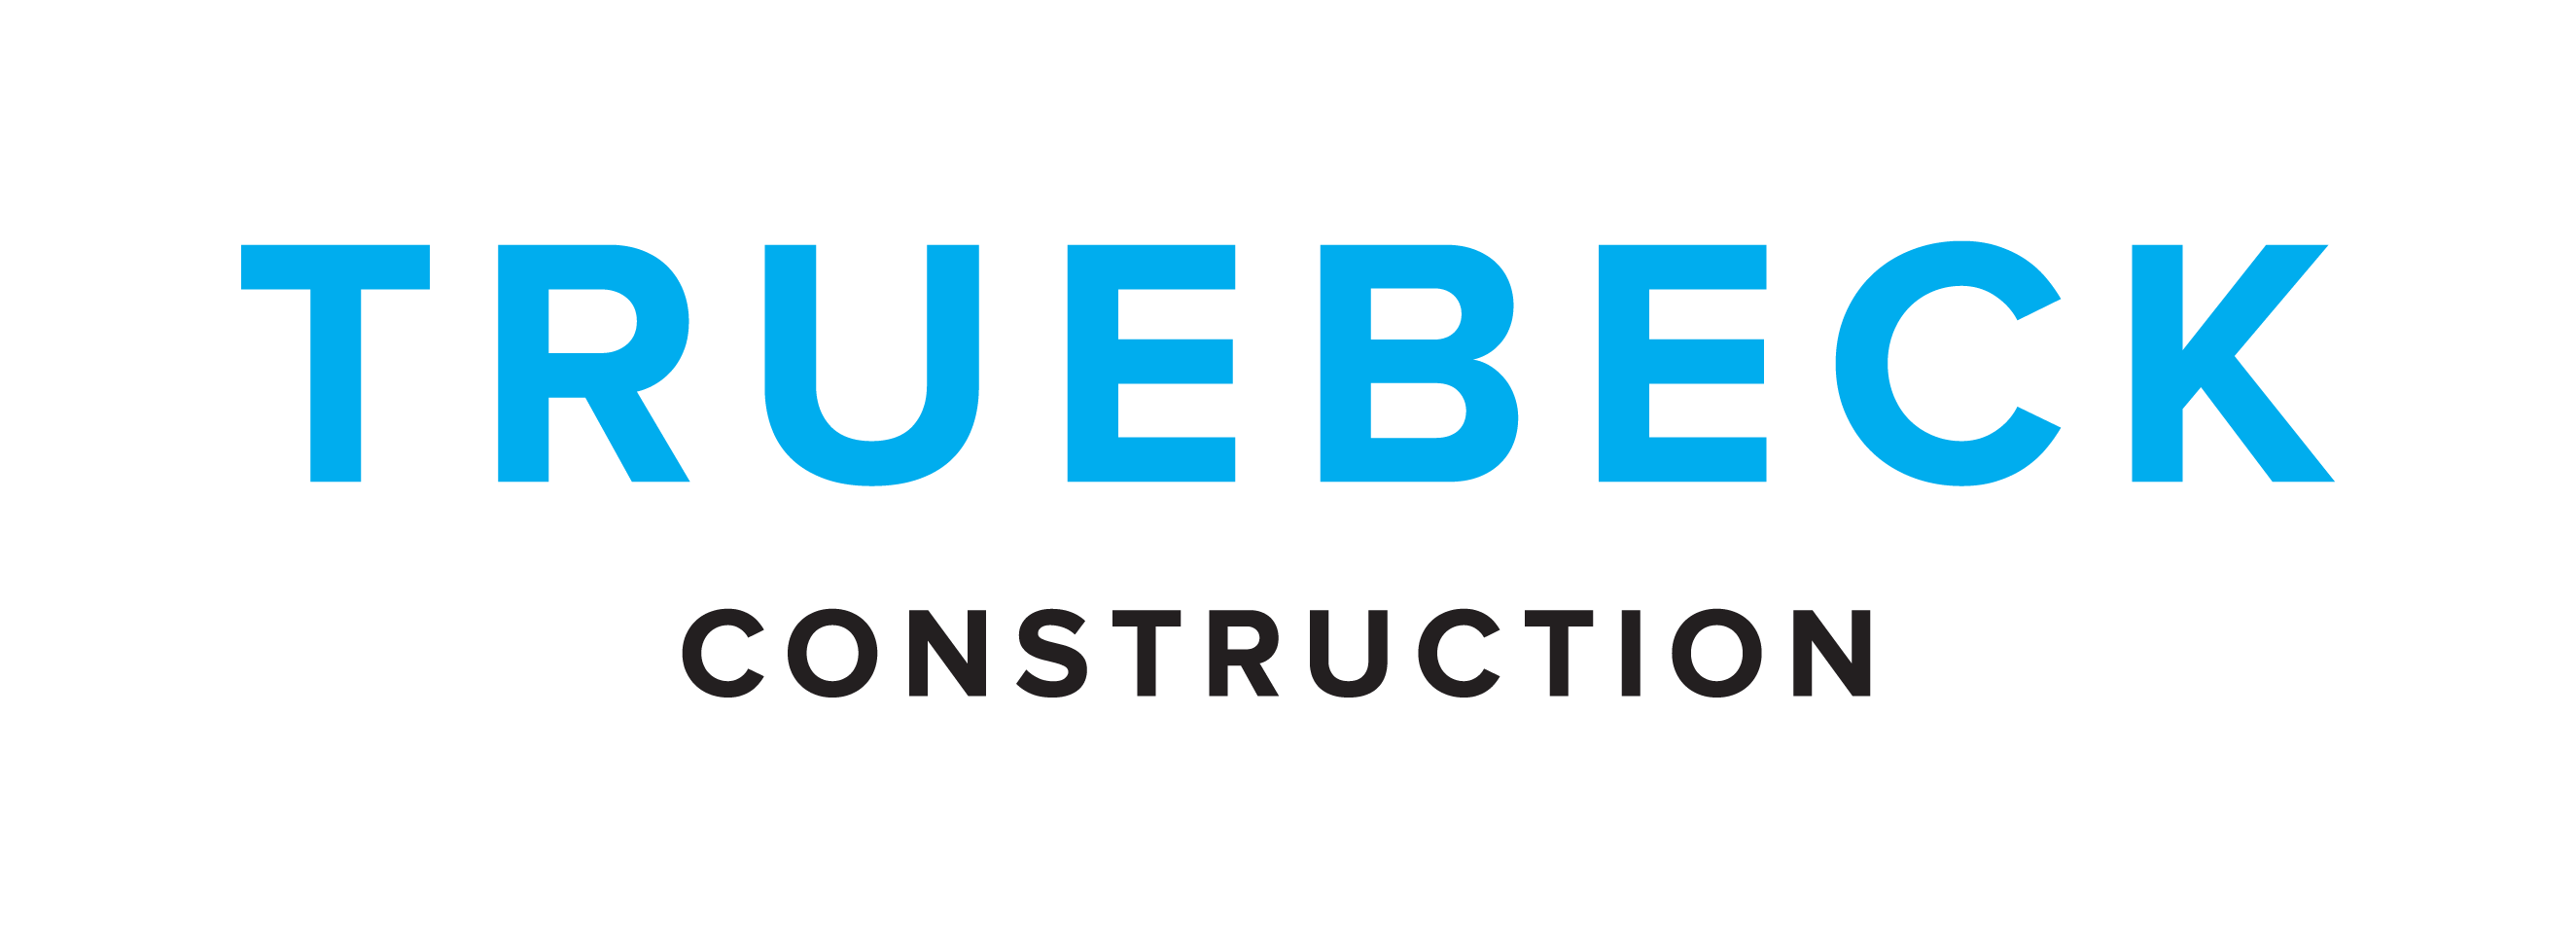 Truebeck_Wordmark_Color